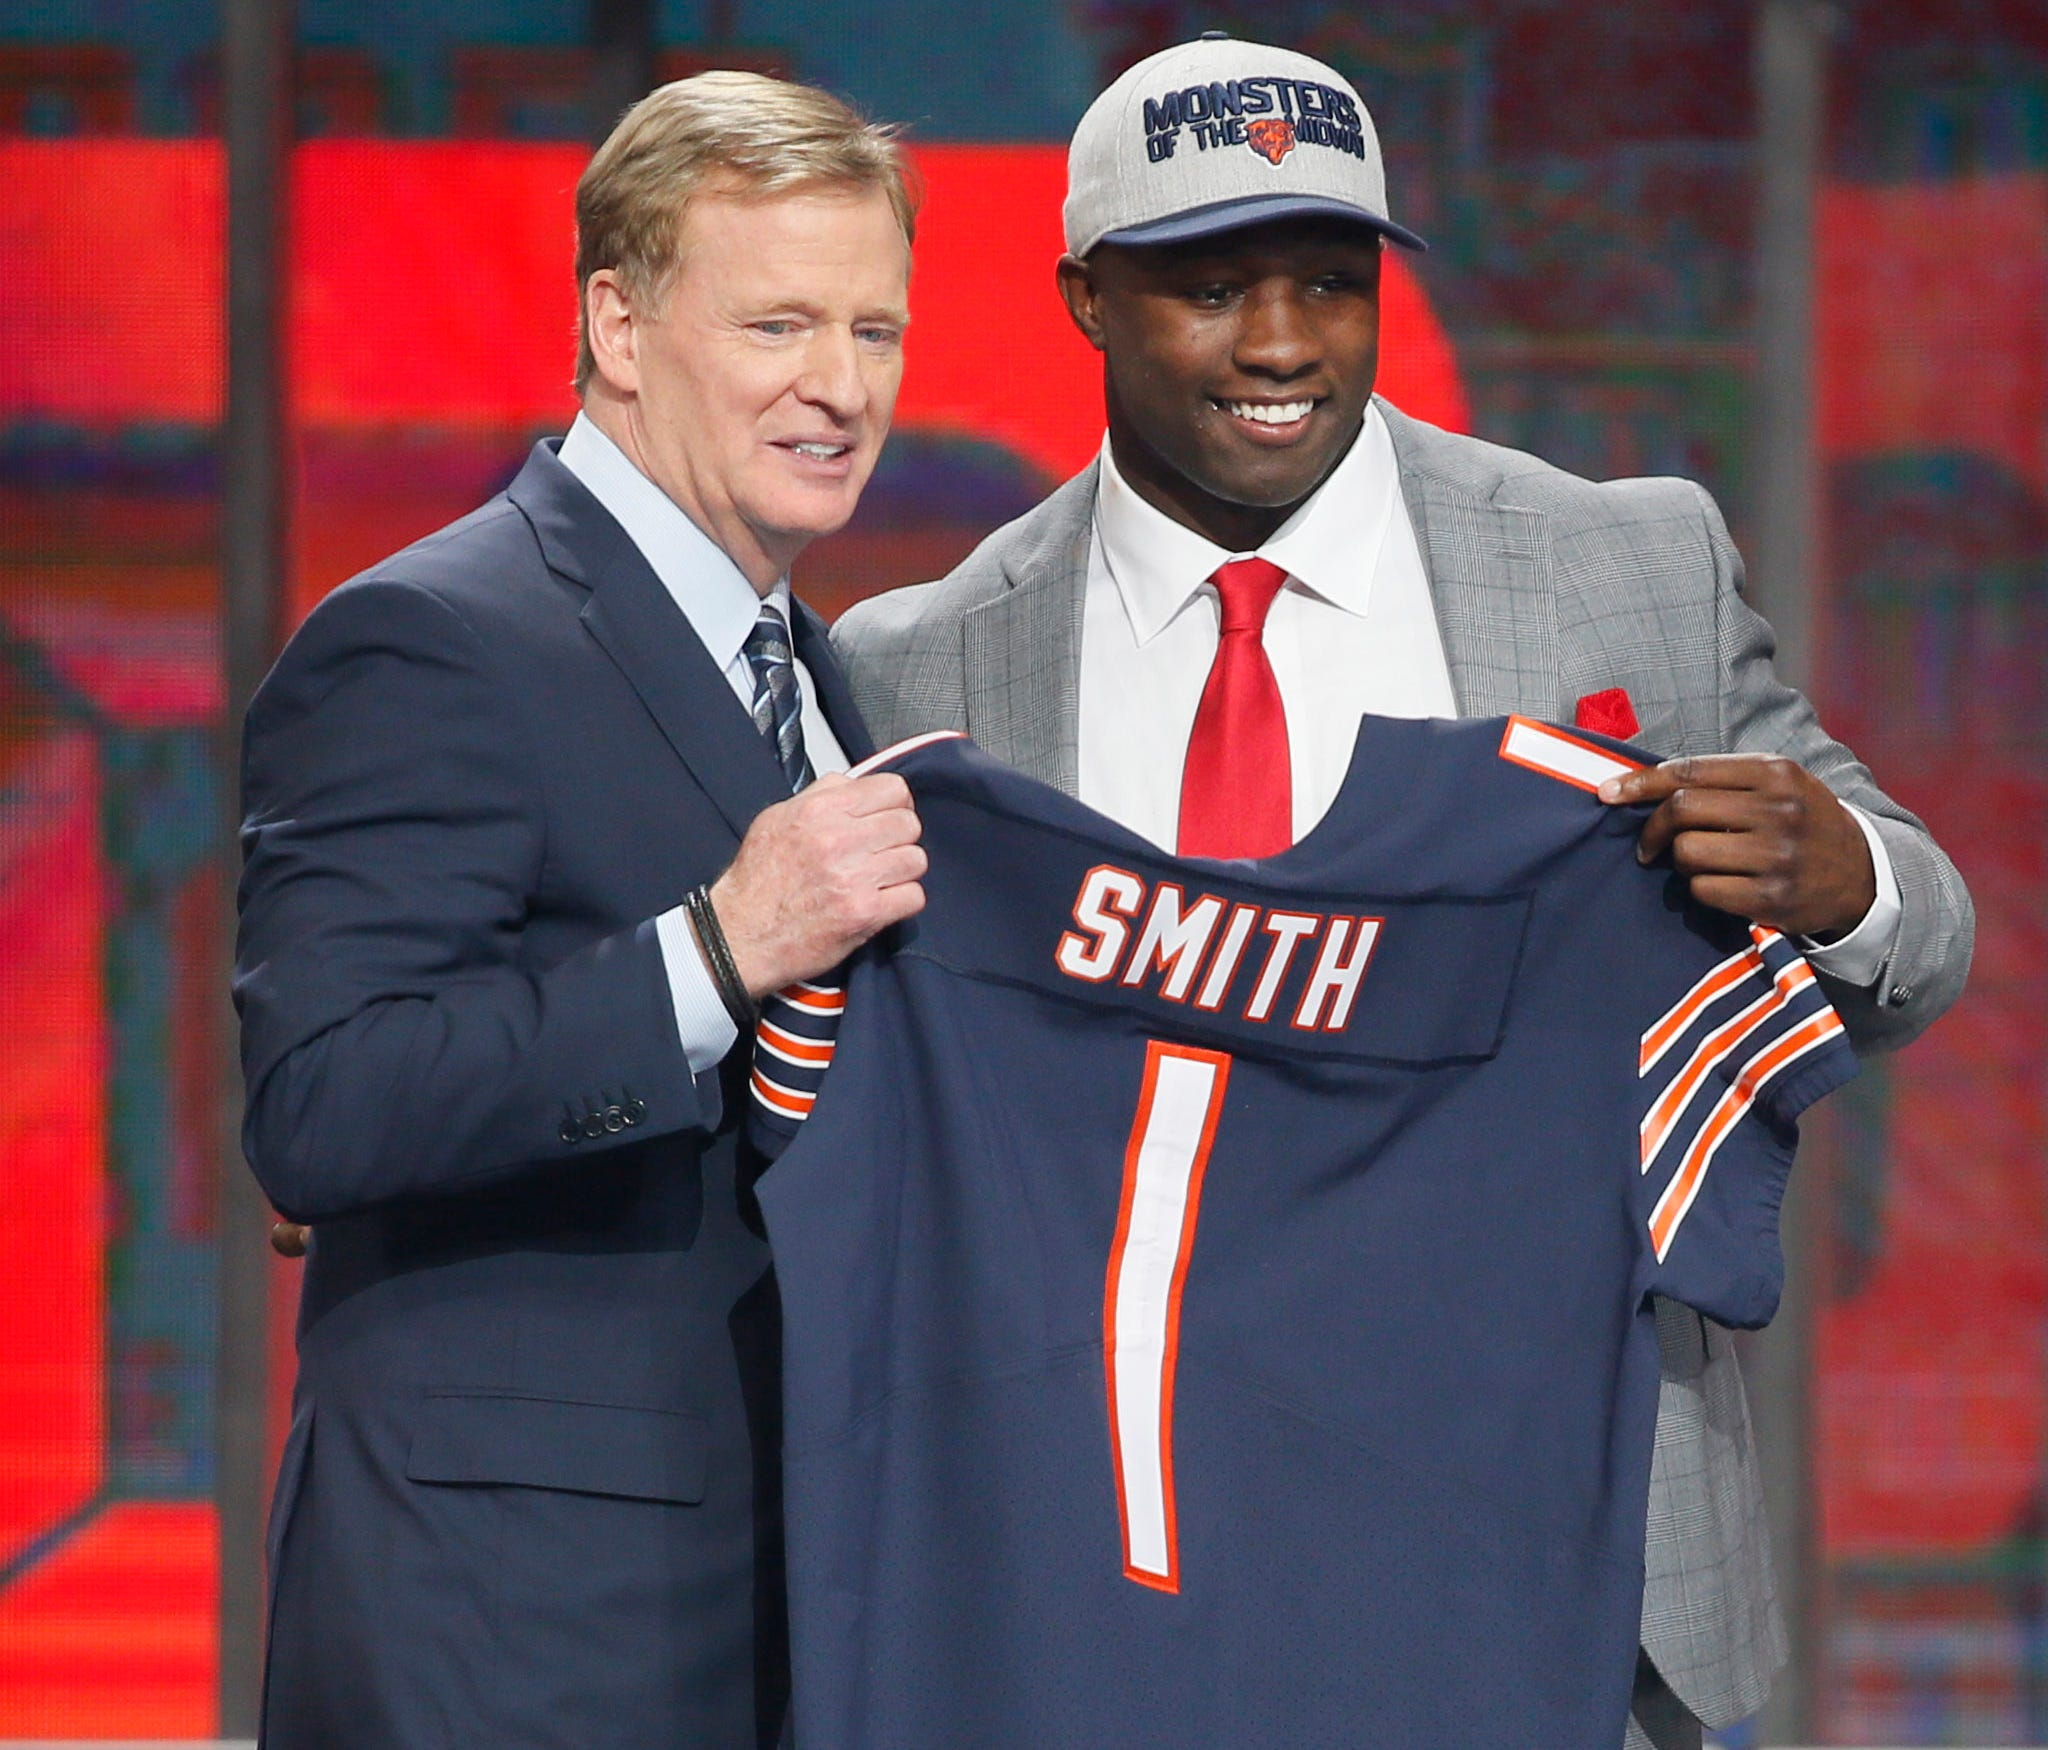 Roquan Smith (Georgia) with NFL commissioner Roger Goodell after being selected as the number eight overall pick to the Chicago Bears in the first round of the 2018 NFL Draft at AT&T Stadium.